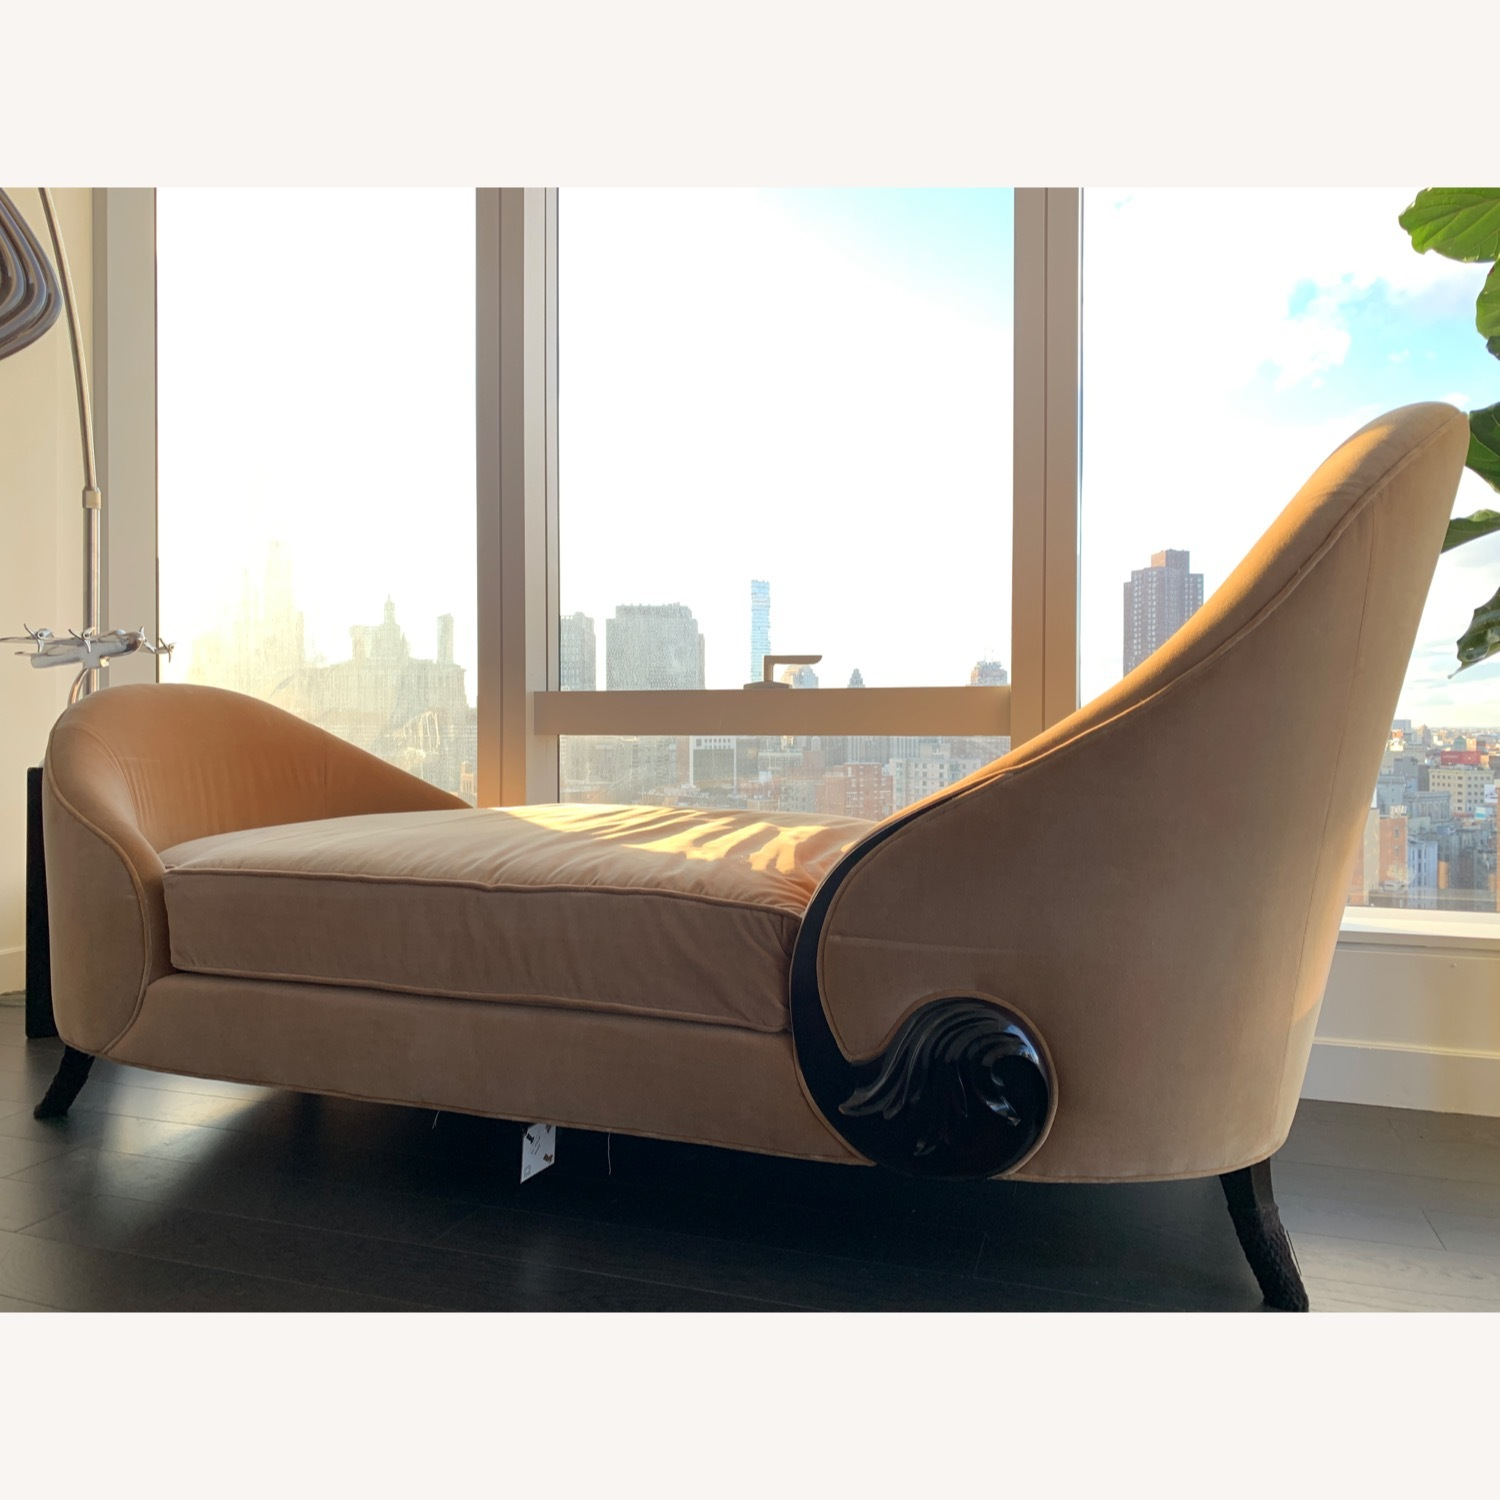 Christopher Guy Notre Dame Daybed - image-1